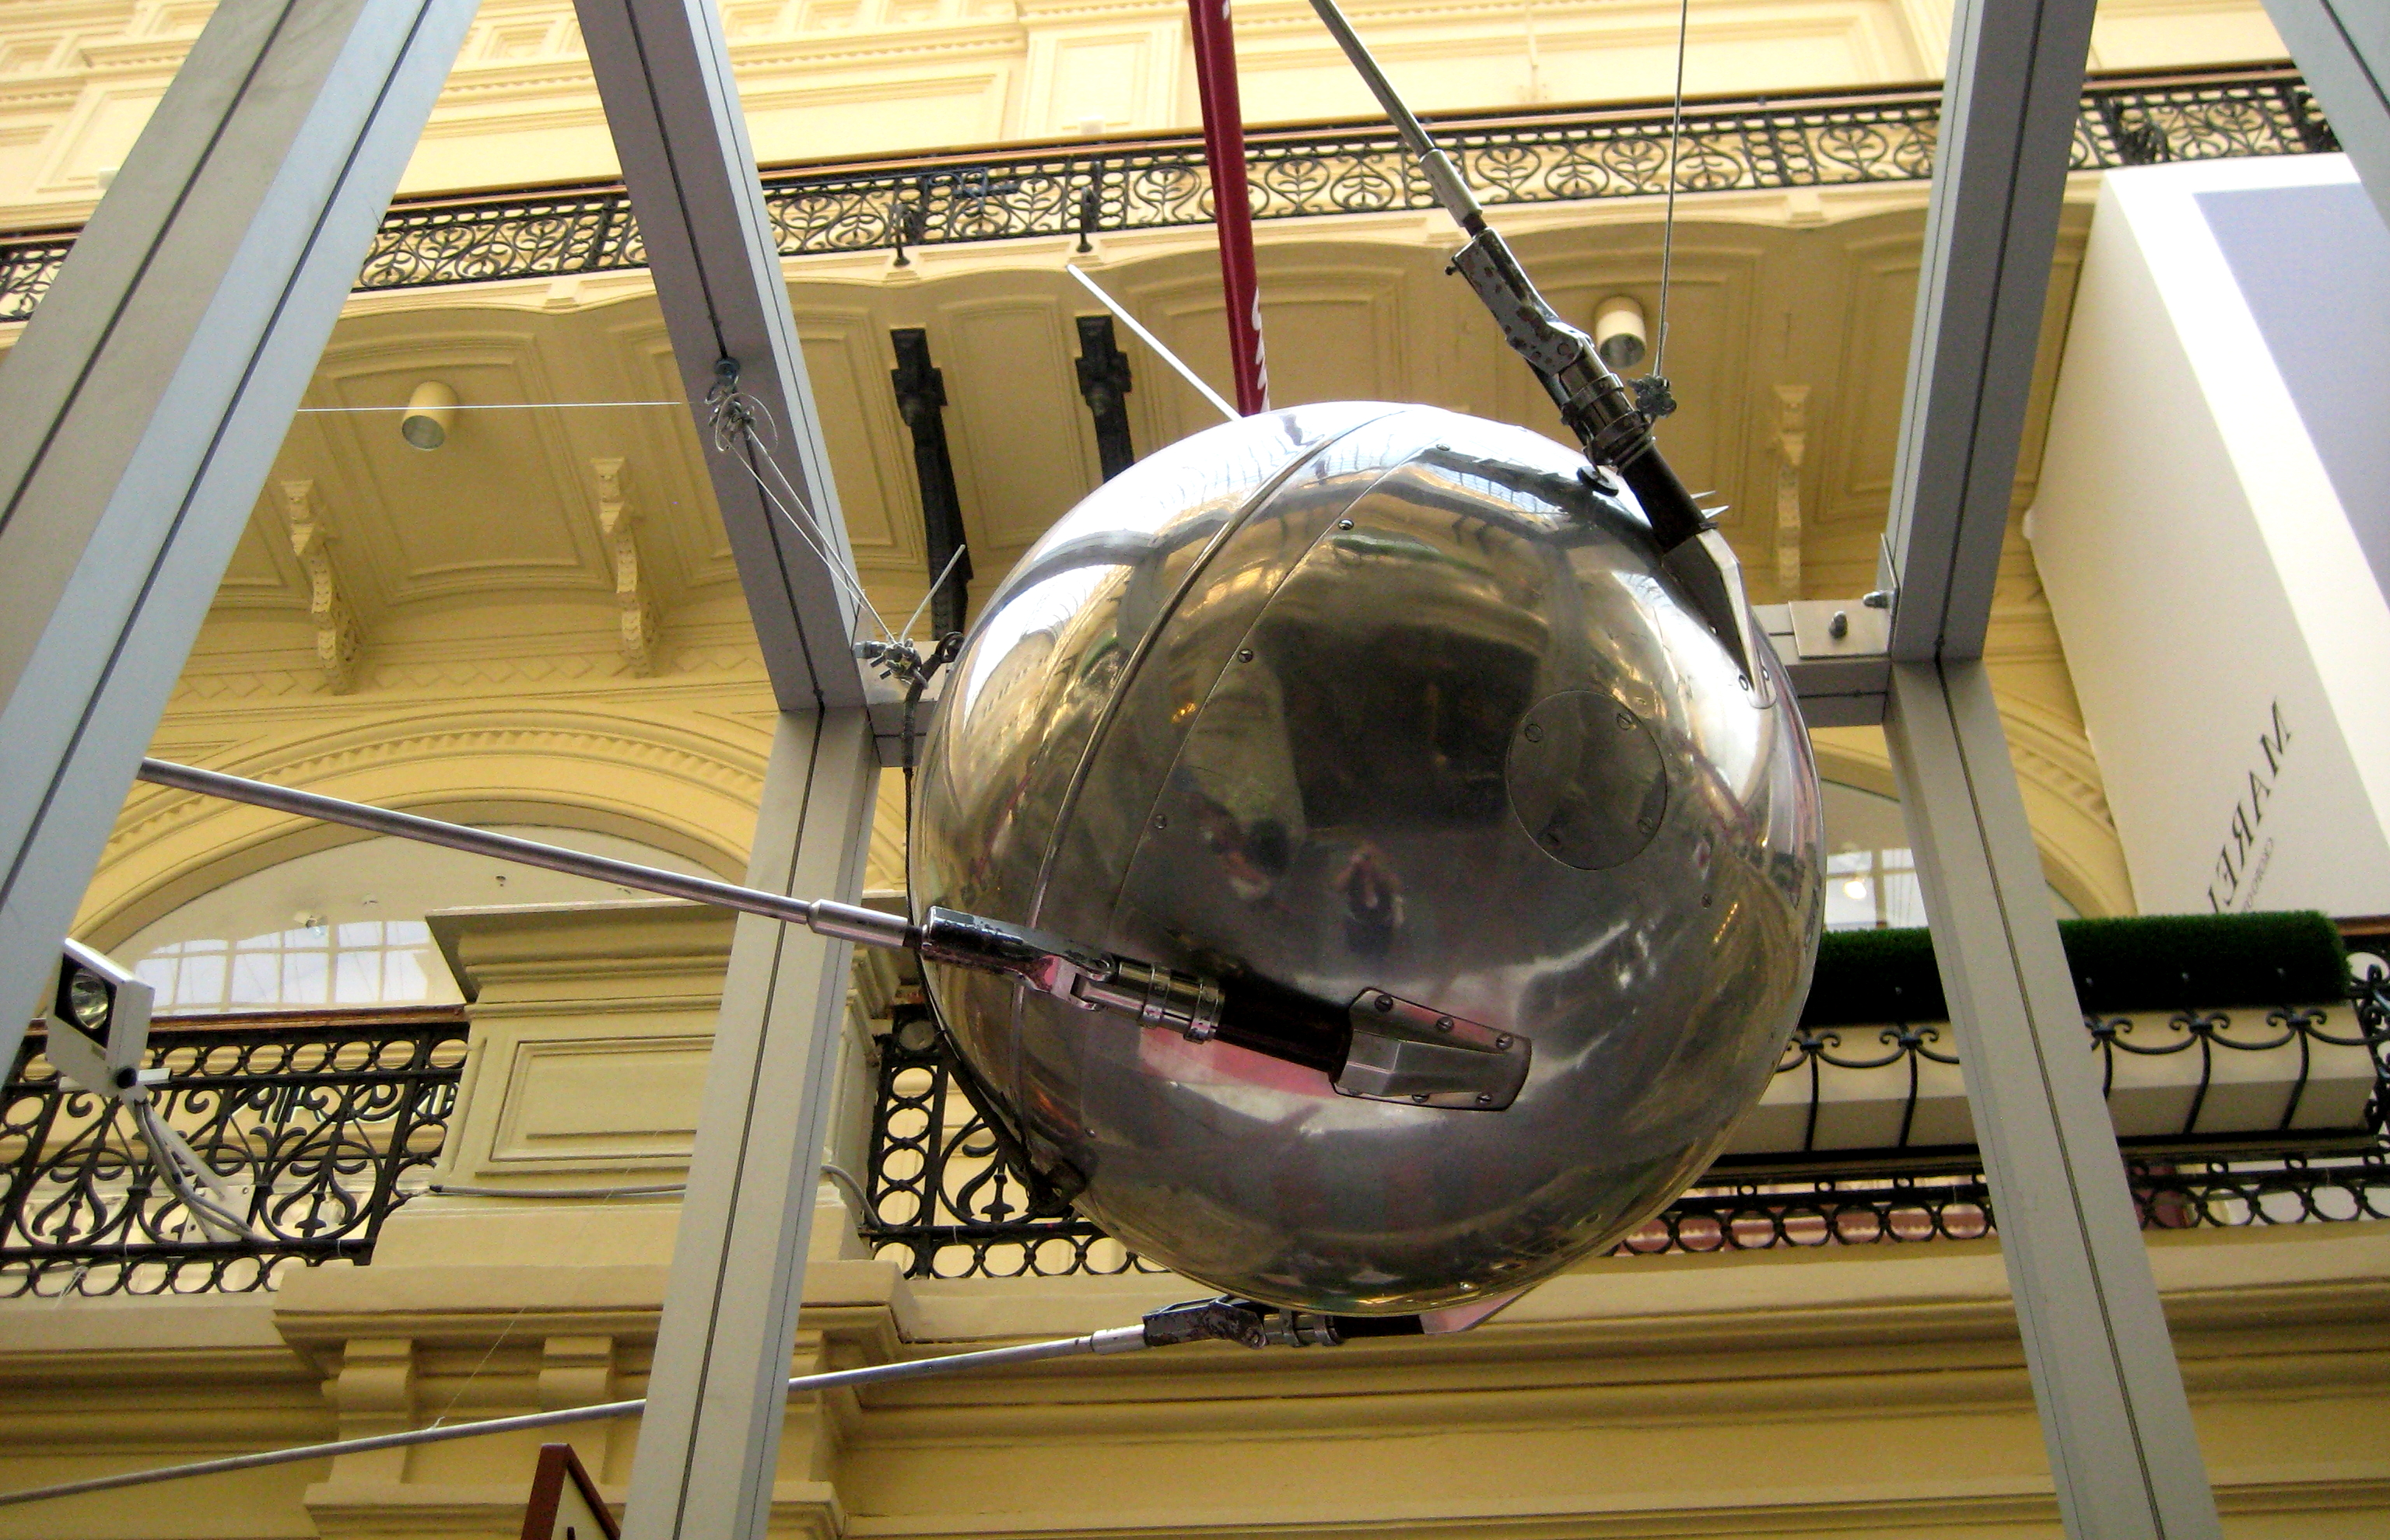 http://upload.wikimedia.org/wikipedia/commons/7/74/Sputnik-1_(model)_02.jpg